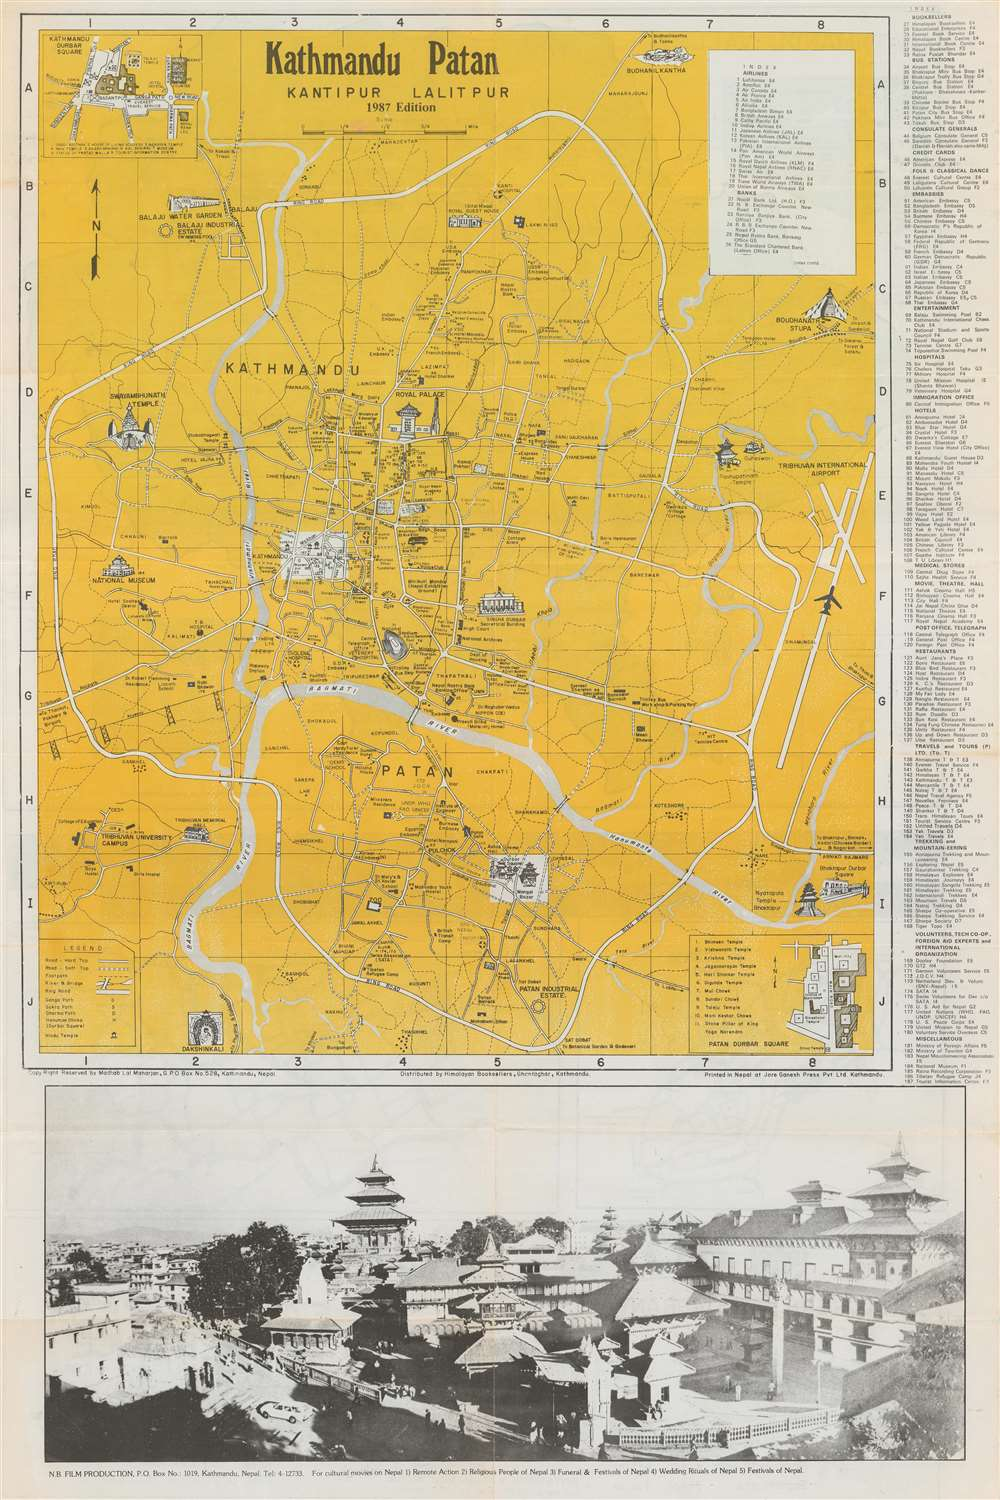 Kathmandu Patan Kantipur Lalitpur.: Geographicus Rare Antique Maps on kuala lumpur, dhaka map, kabul map, mt everest map, colombo map, karachi map, kashmir map, calcutta map, mount everest, islamabad map, tibet map, khyber pass map, lahore map, new delhi, kolkata map, pashupatinath temple, bangladesh map, ulaanbaatar map, rangoon map, nepal map, hong kong map, mumbai map, bhutan map, himalayan mountains map,